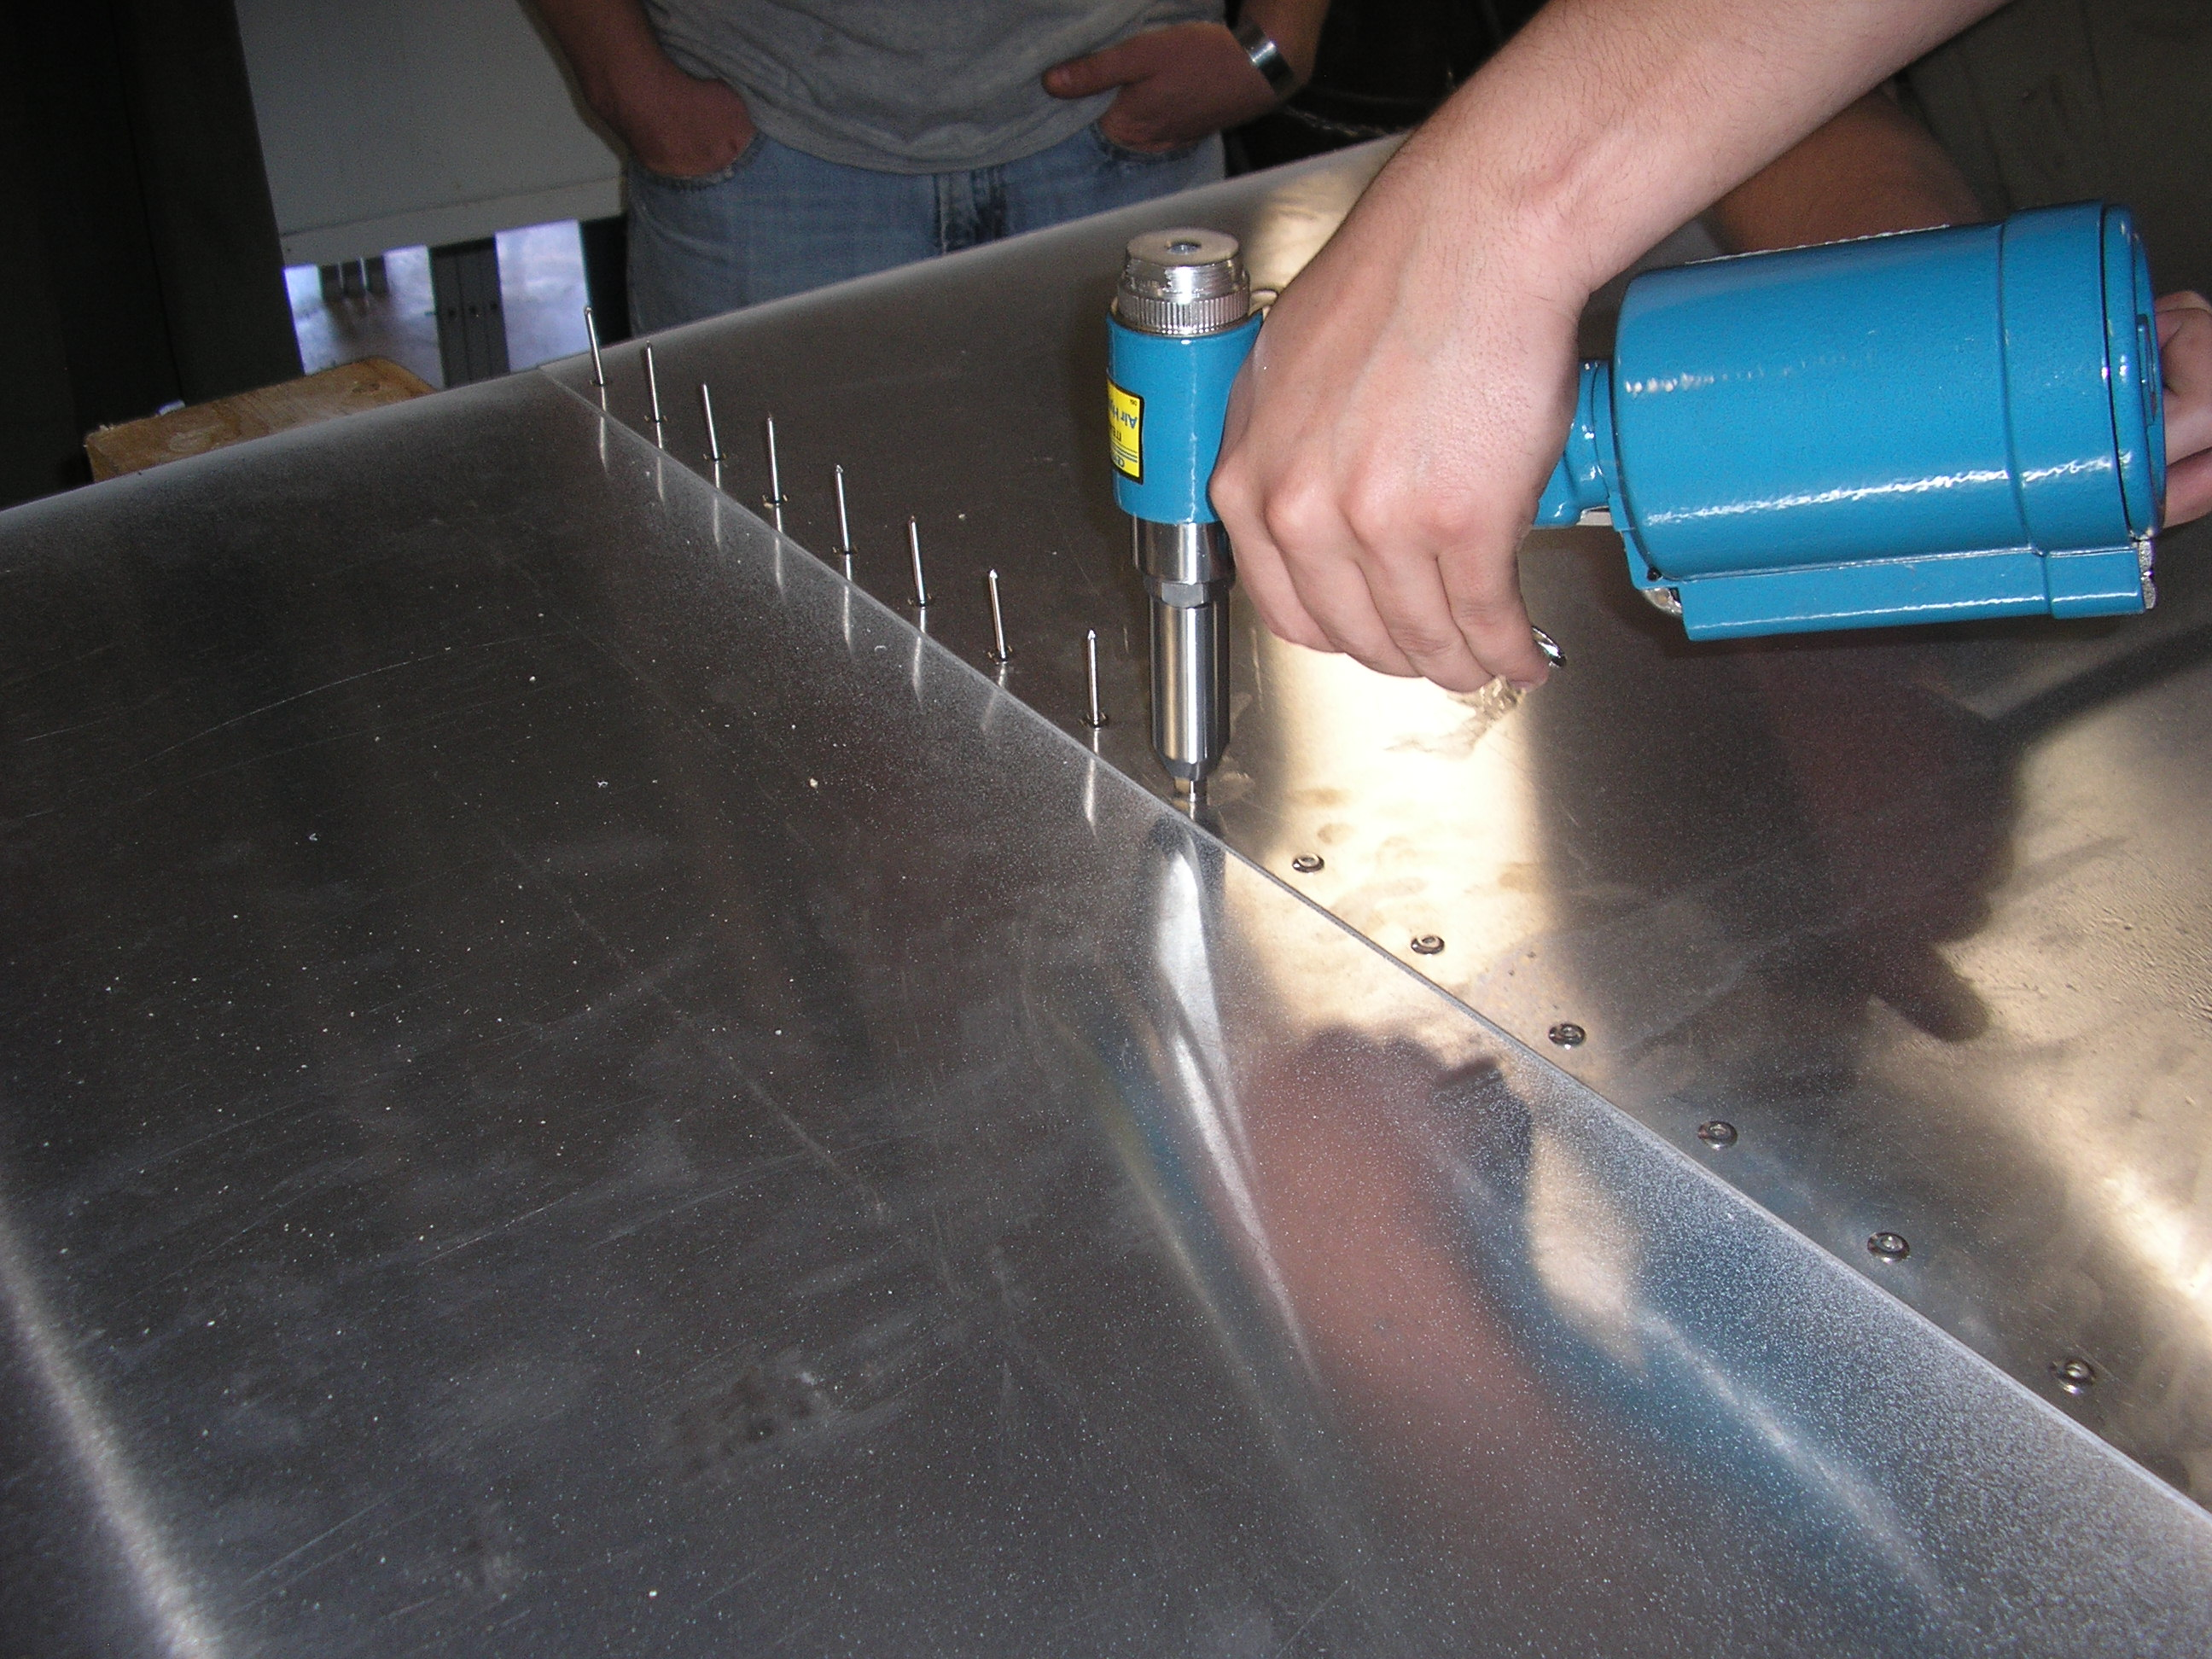 Sheet metal being joined